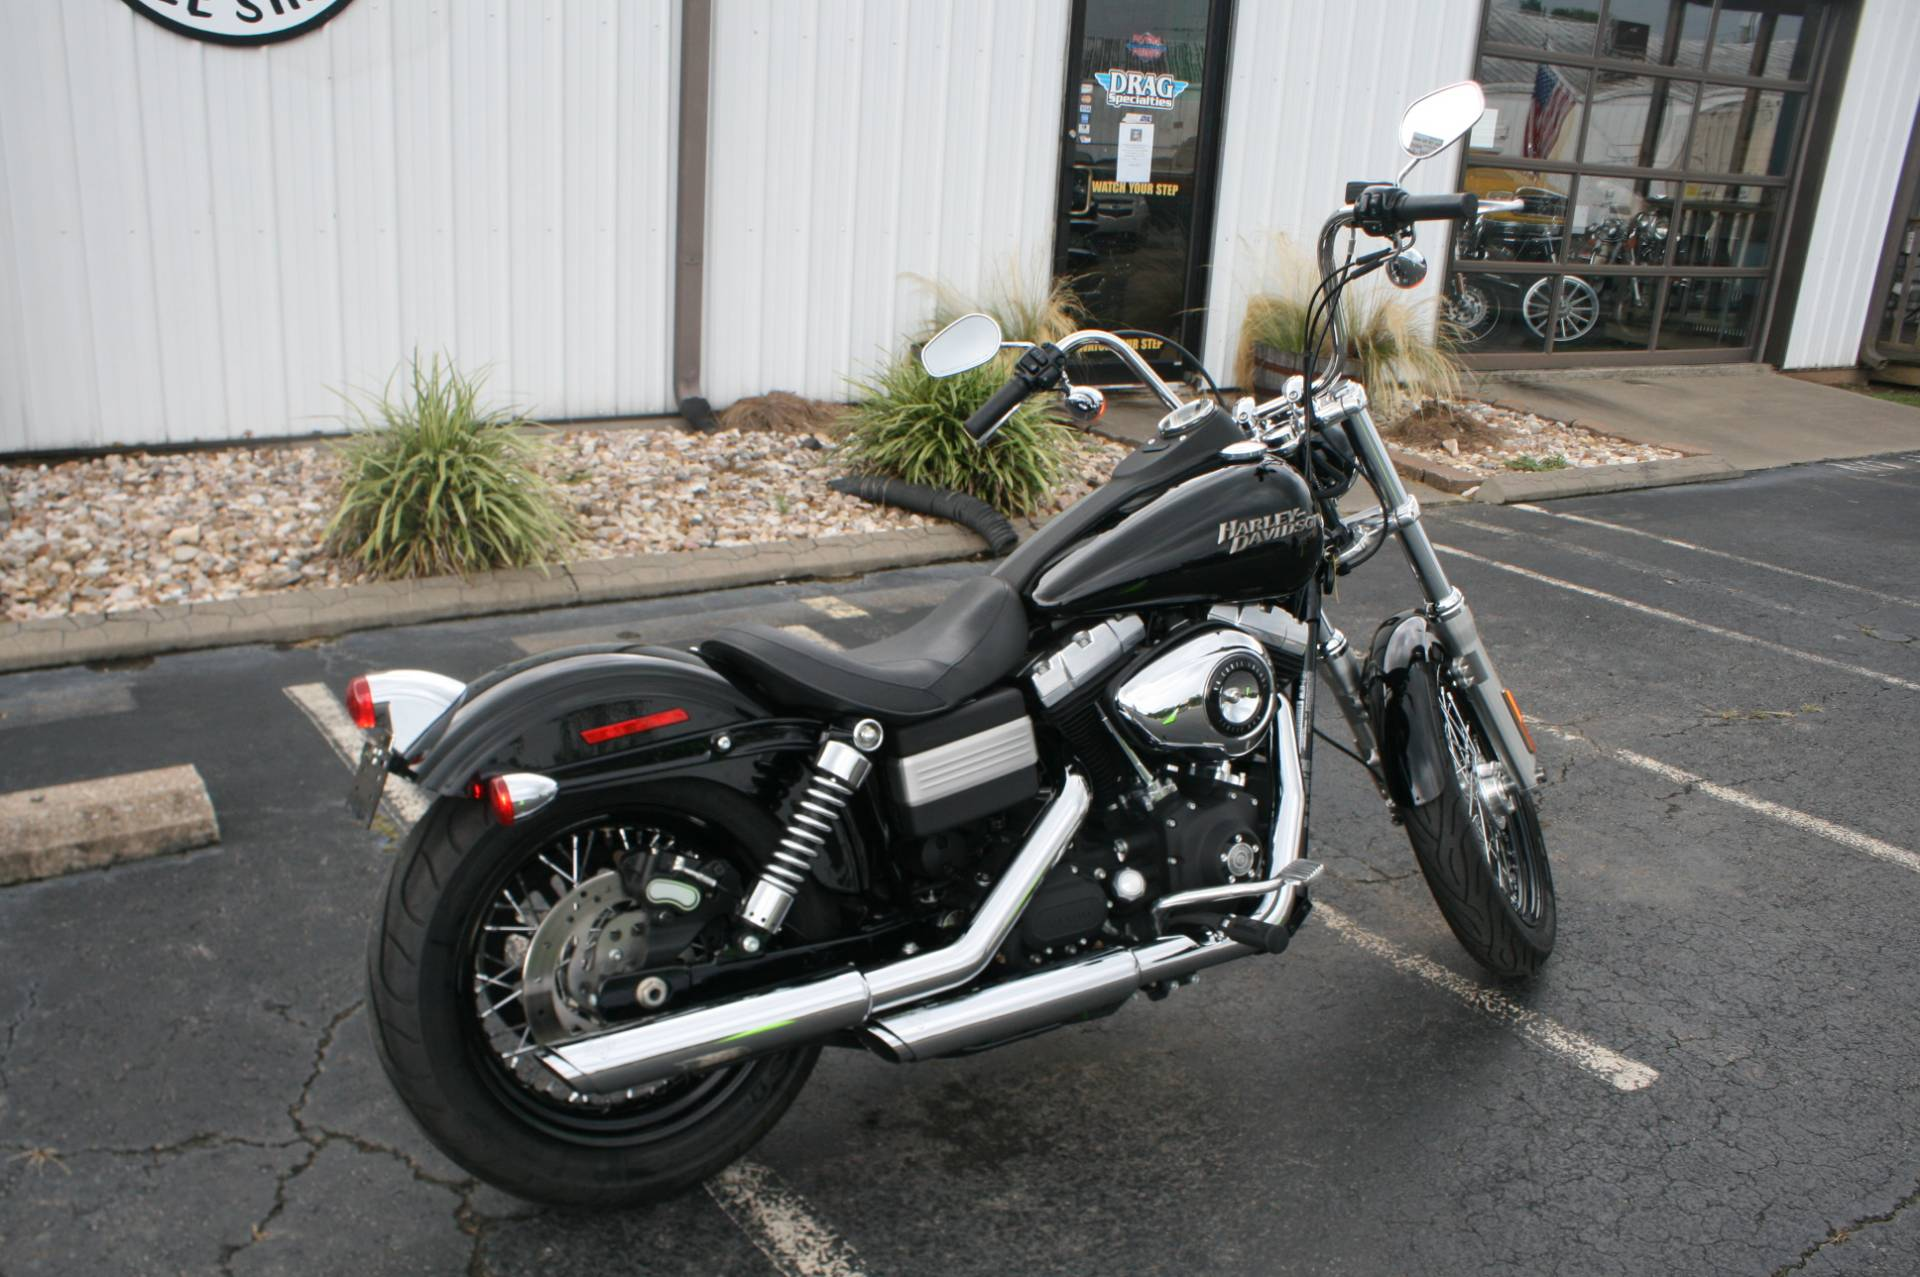 2011 Harley-Davidson FXDB STREET BOB in Greenbrier, Arkansas - Photo 5